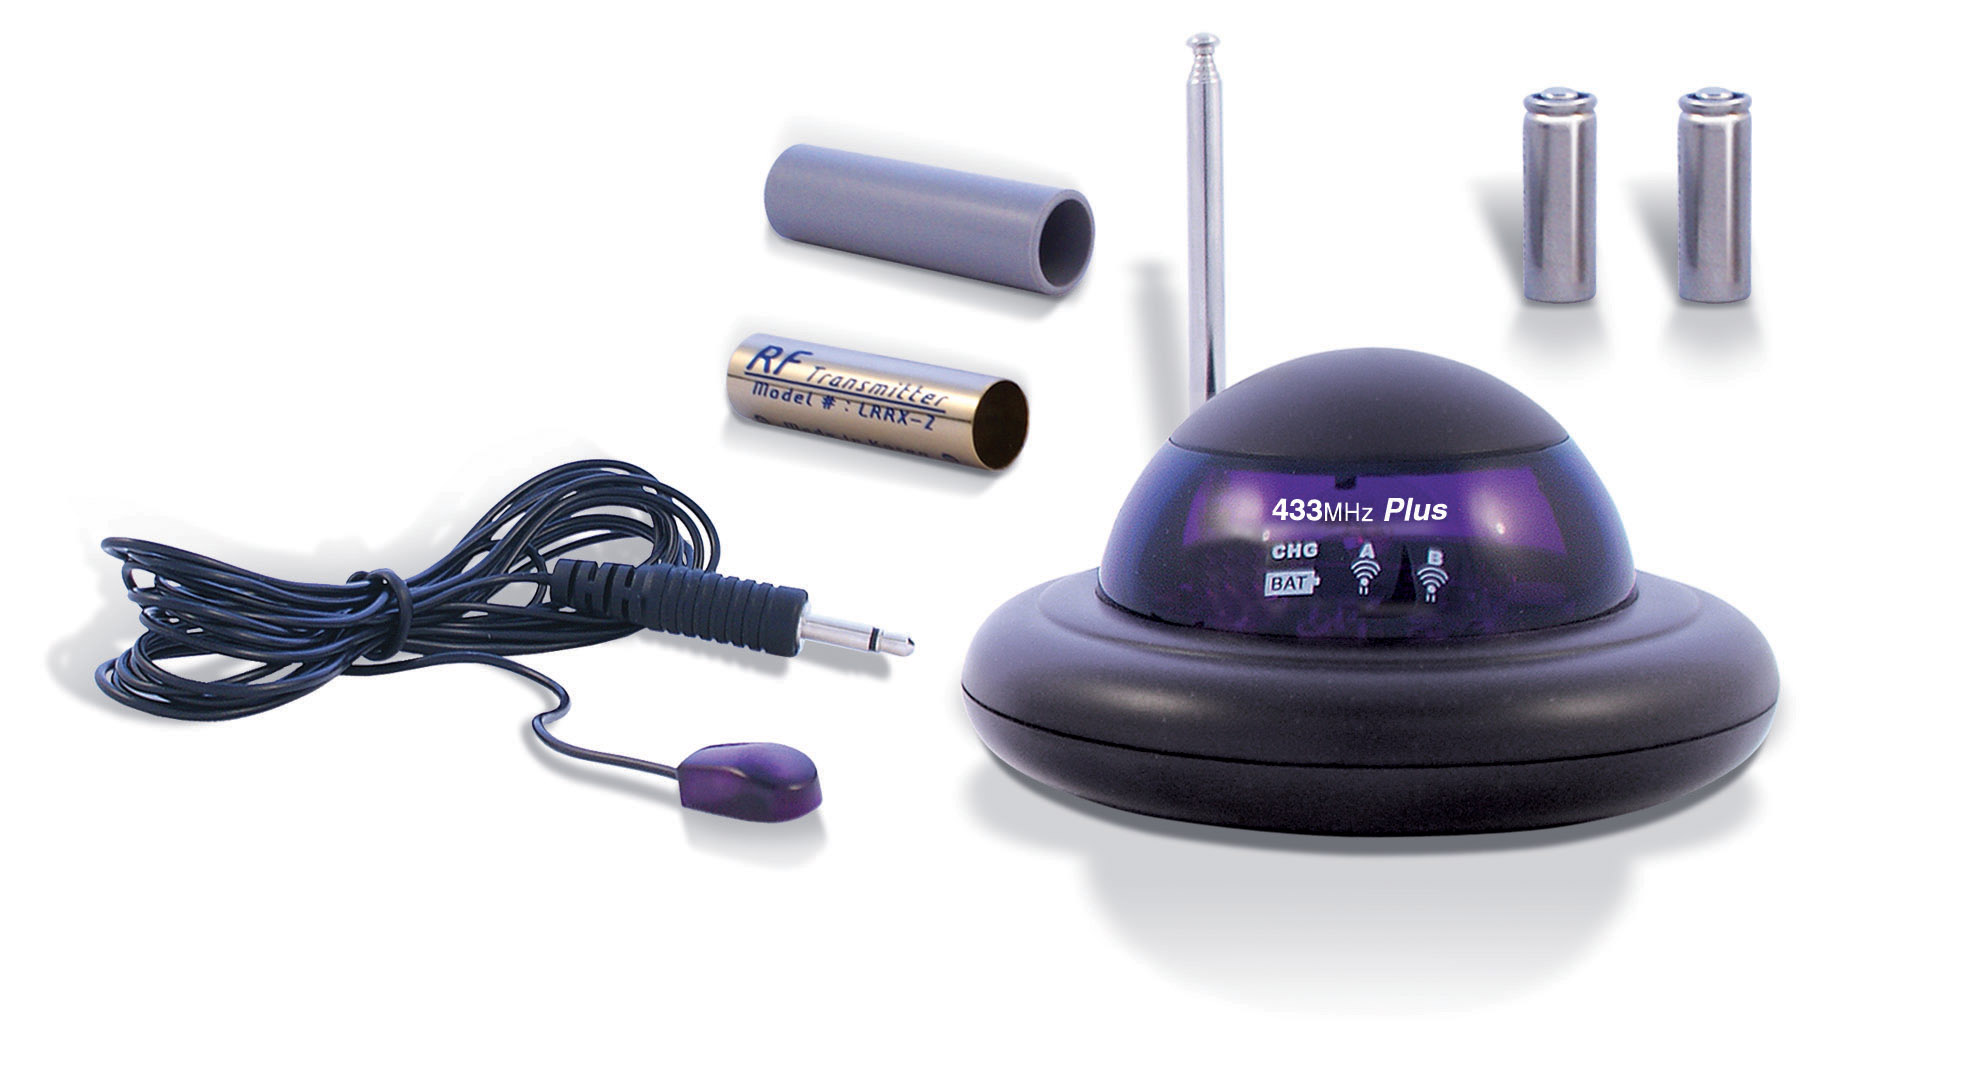 Next Generation Remote Control Extender by Next Generation